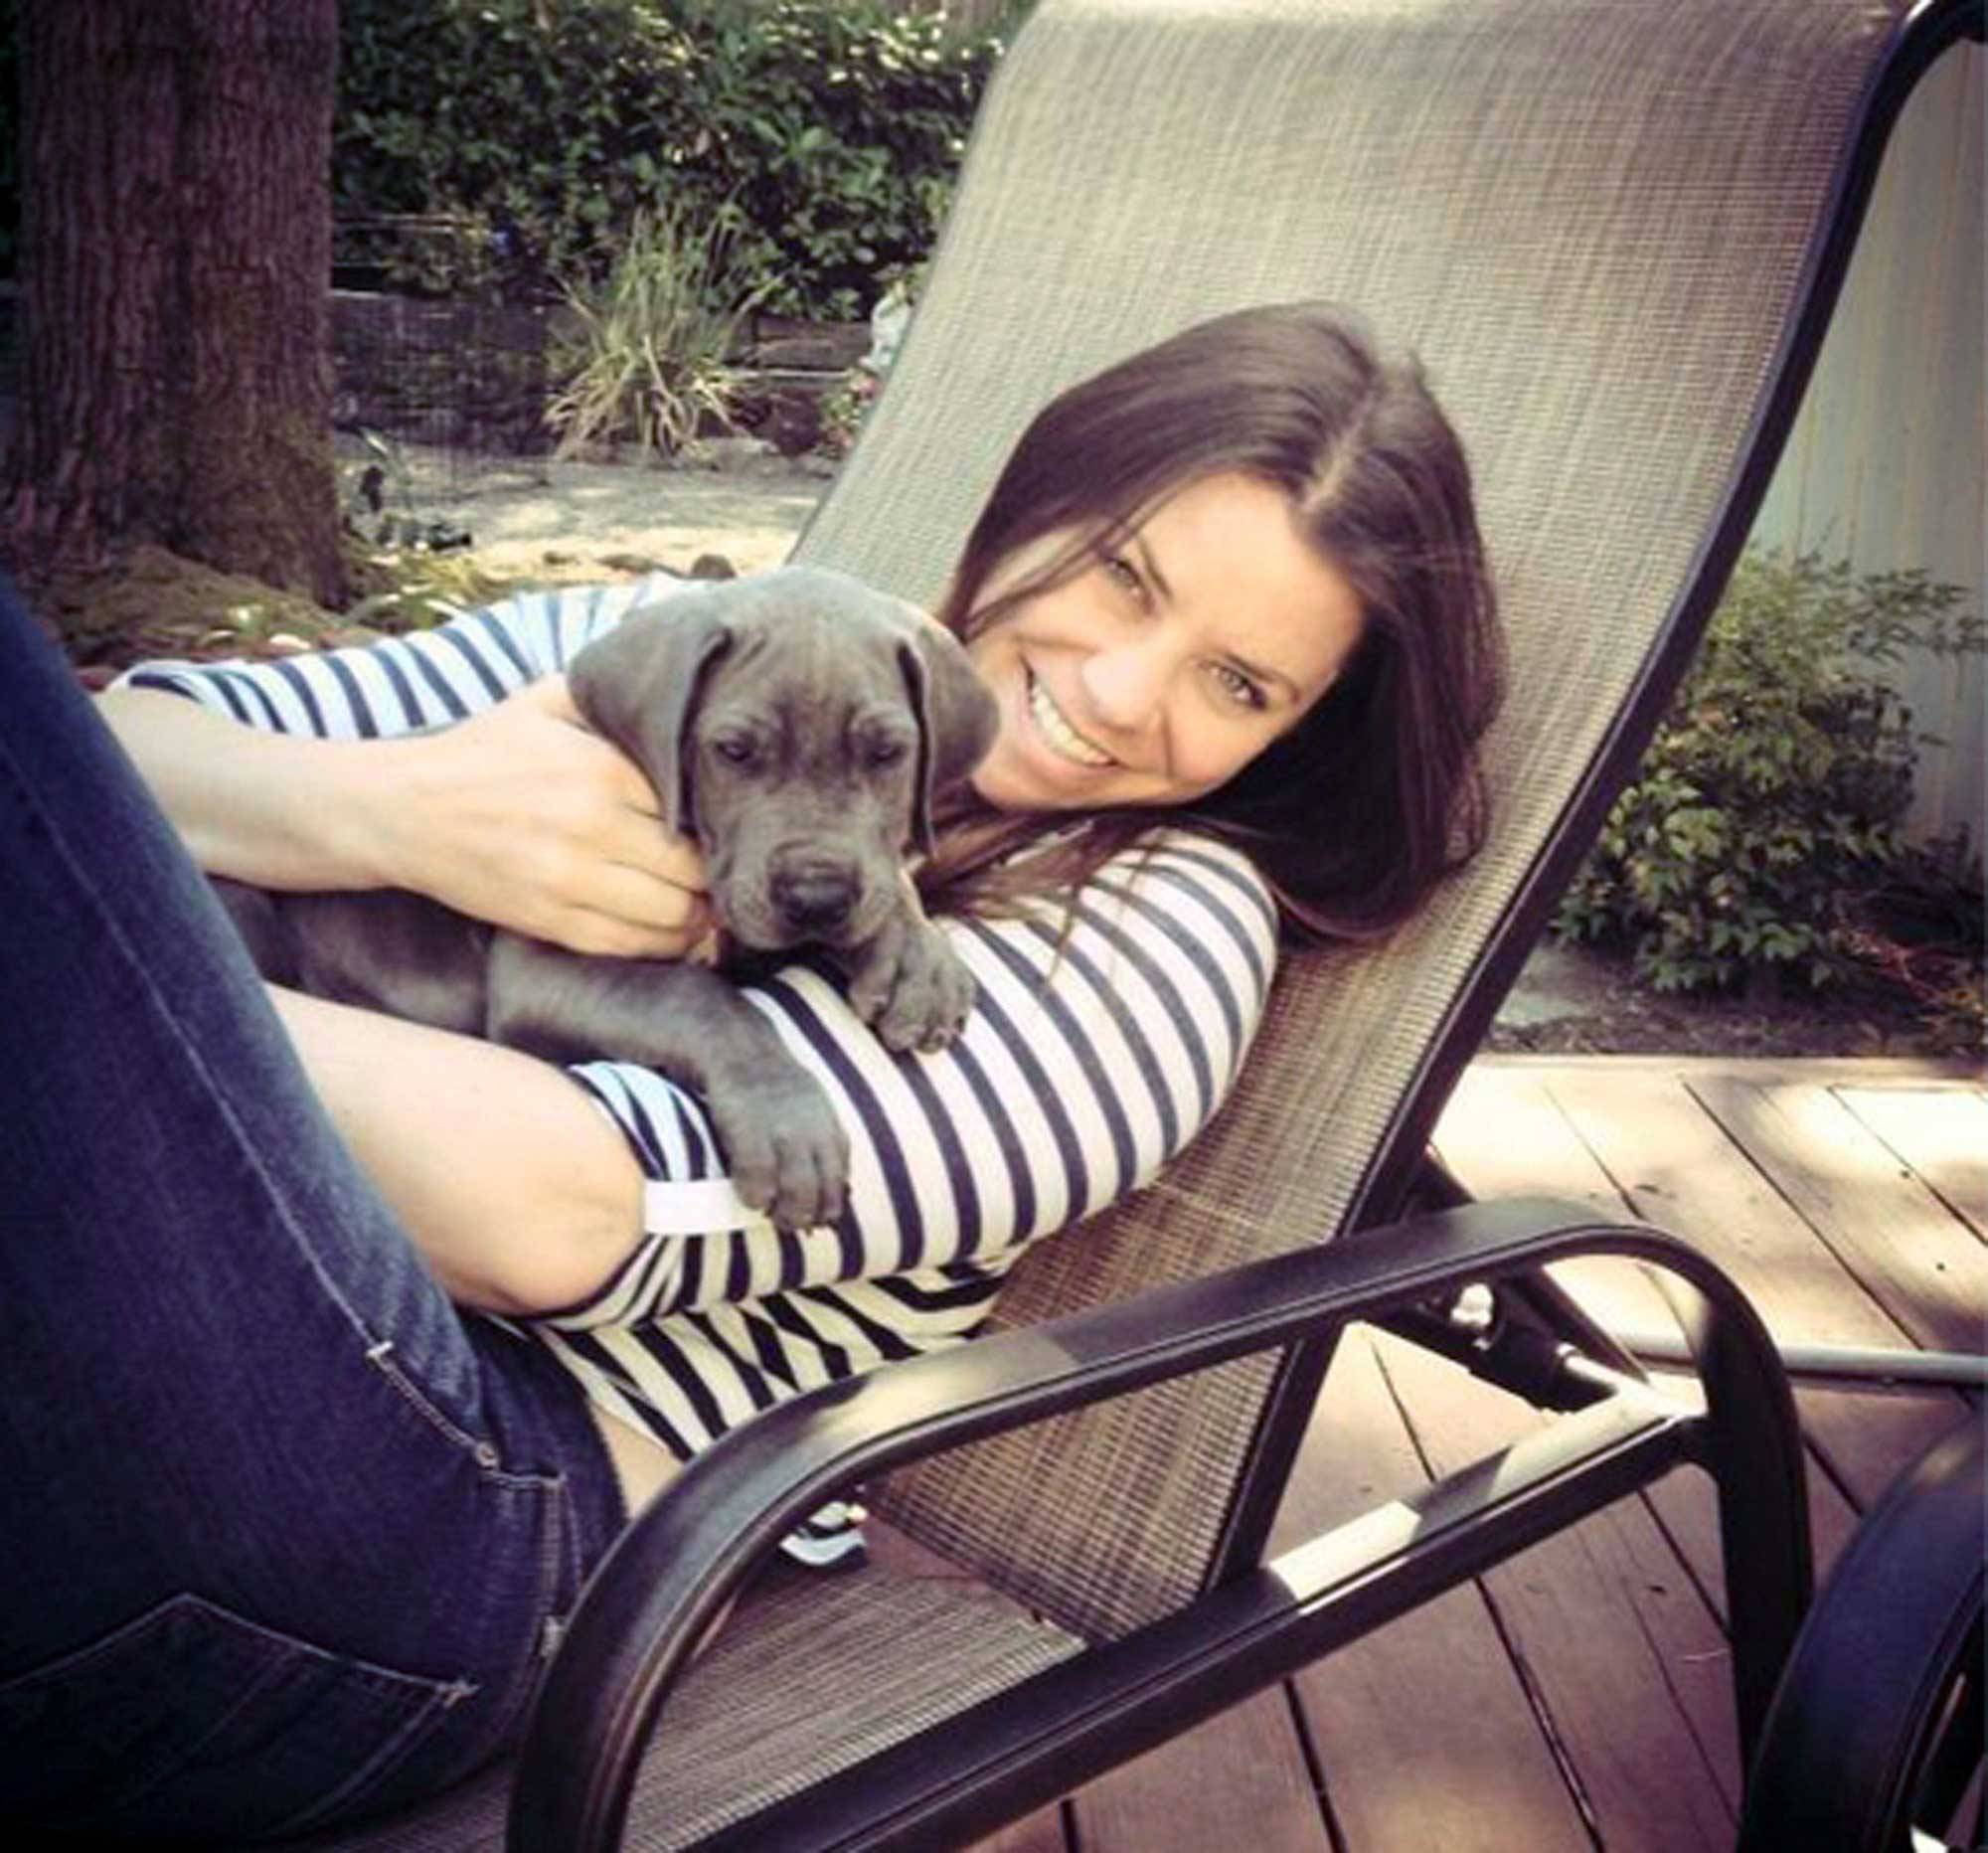 Brittany Maynard Terminally Ill Woman Who Planned Assisted Suicide ...